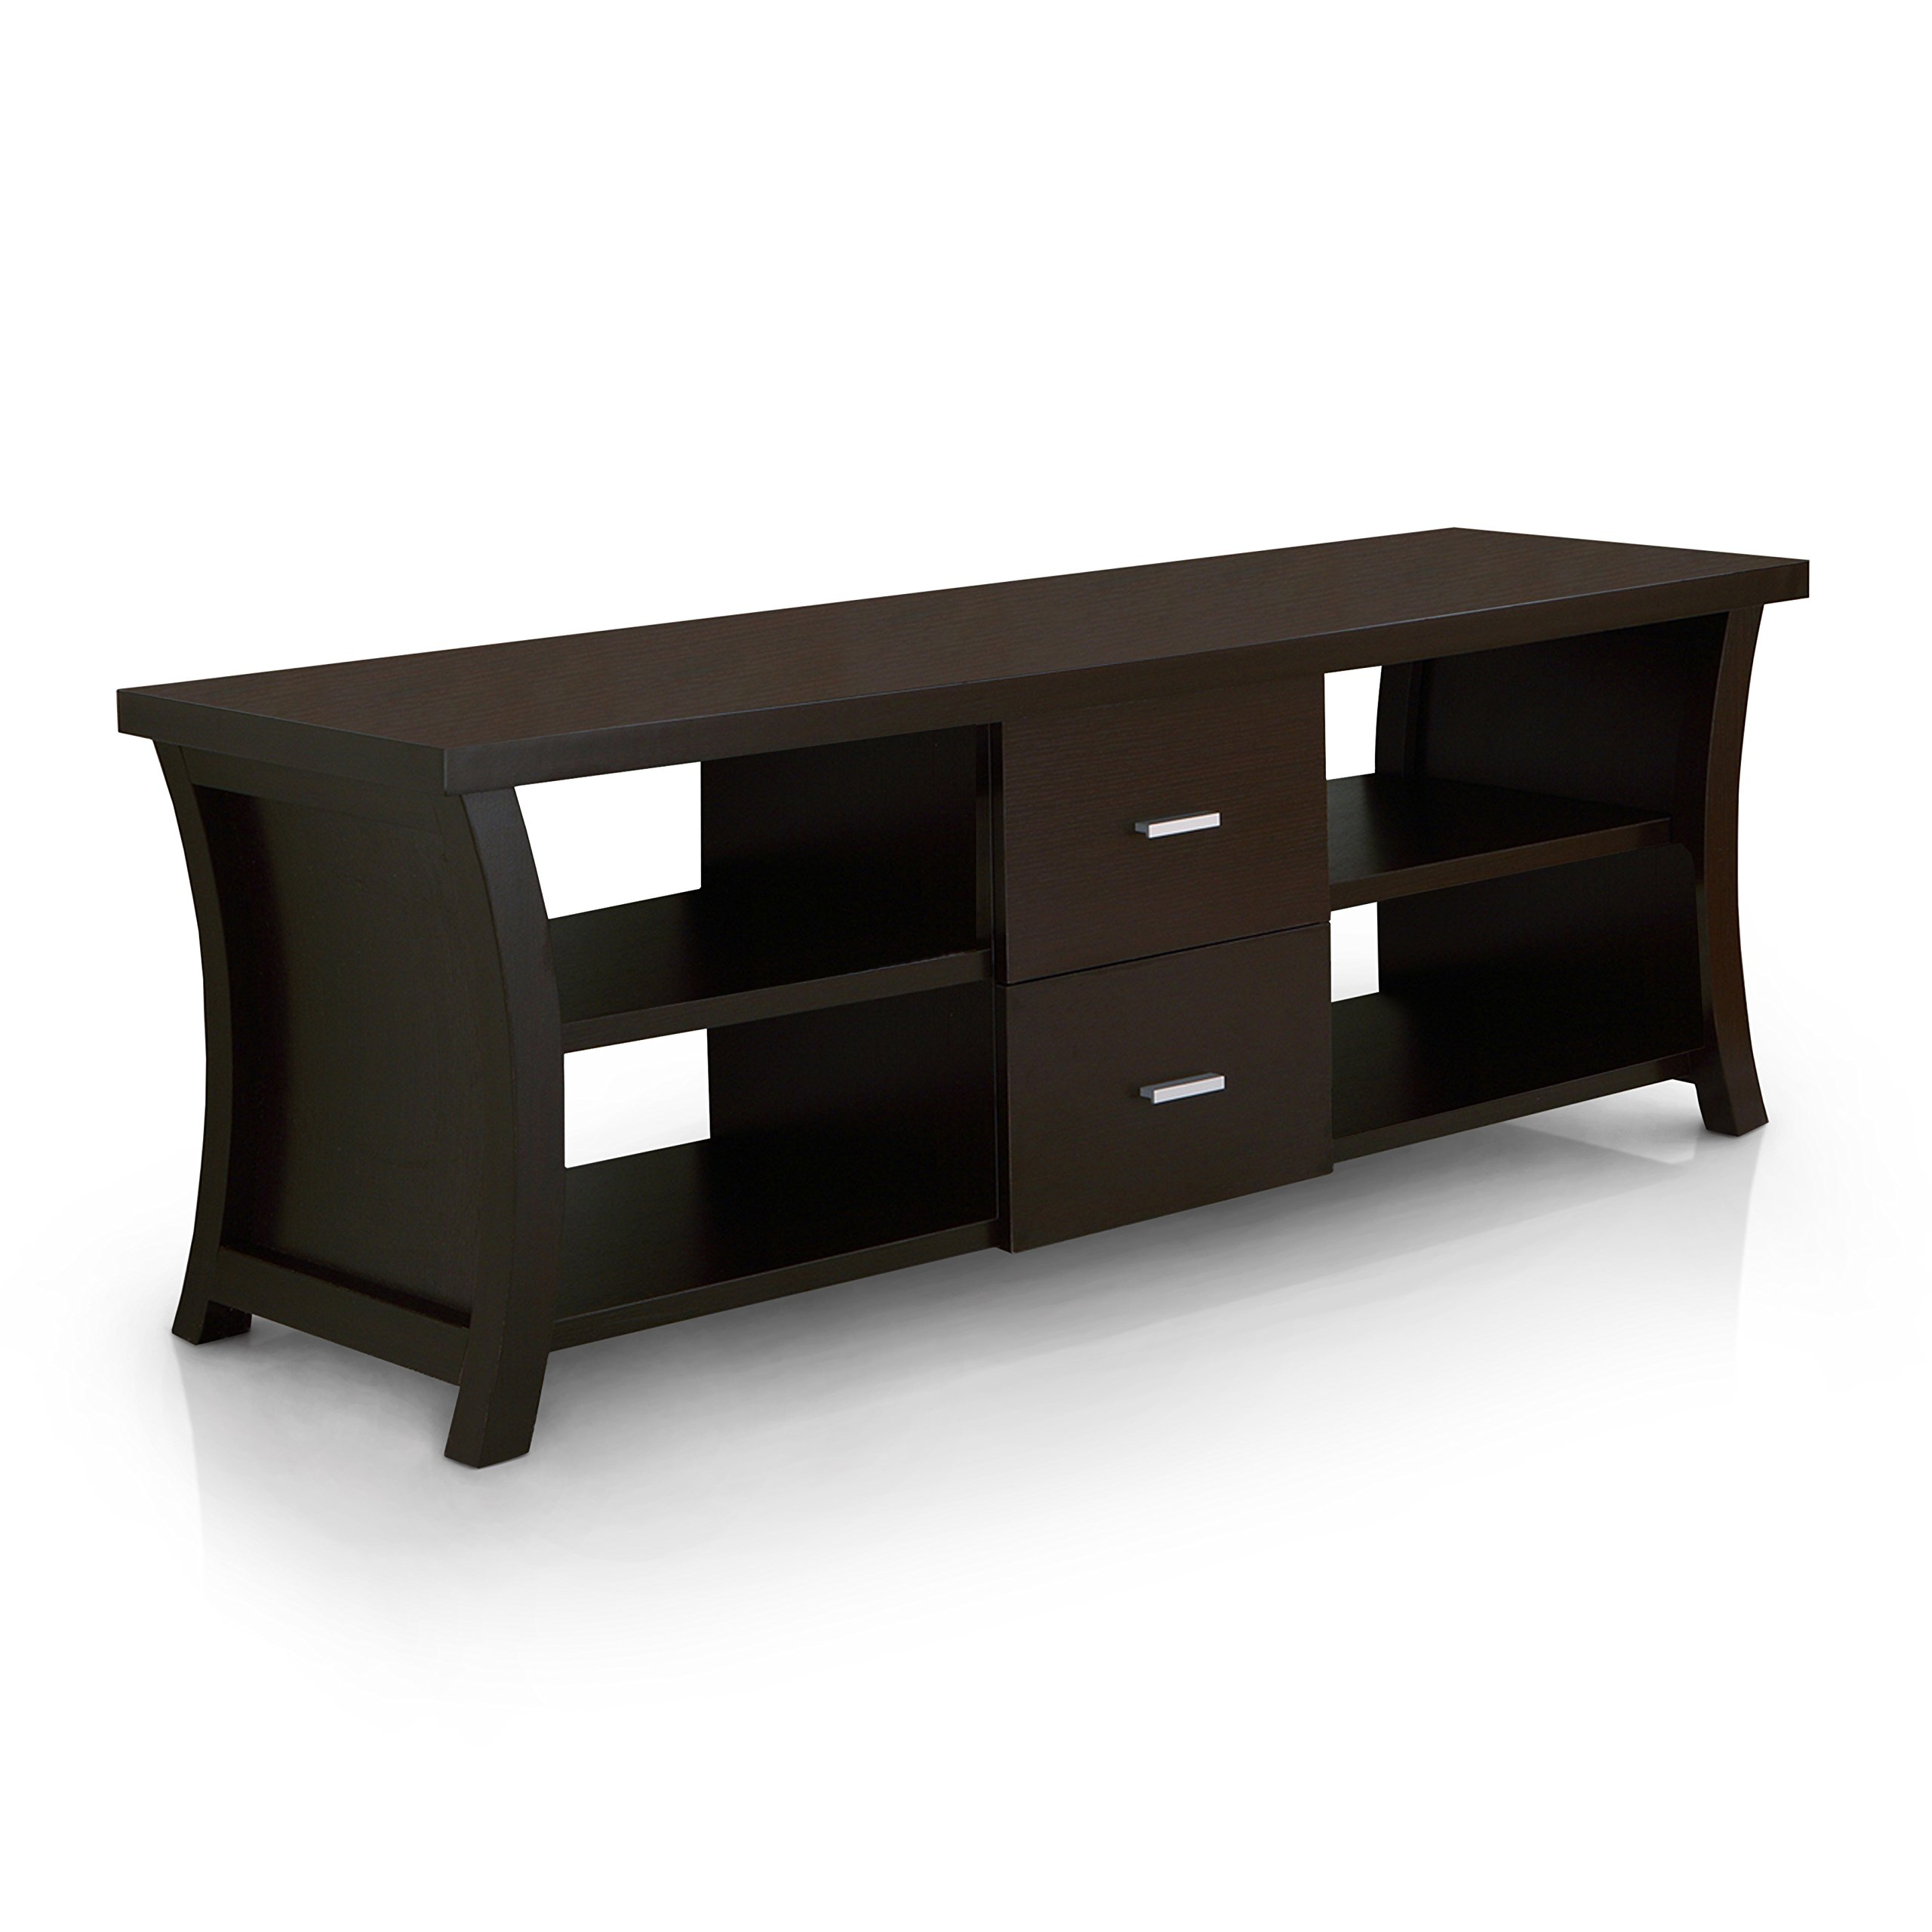 ioHOMES Autumn Entertainment Console with Drawer Storage, 60-Inch, Cappuccino